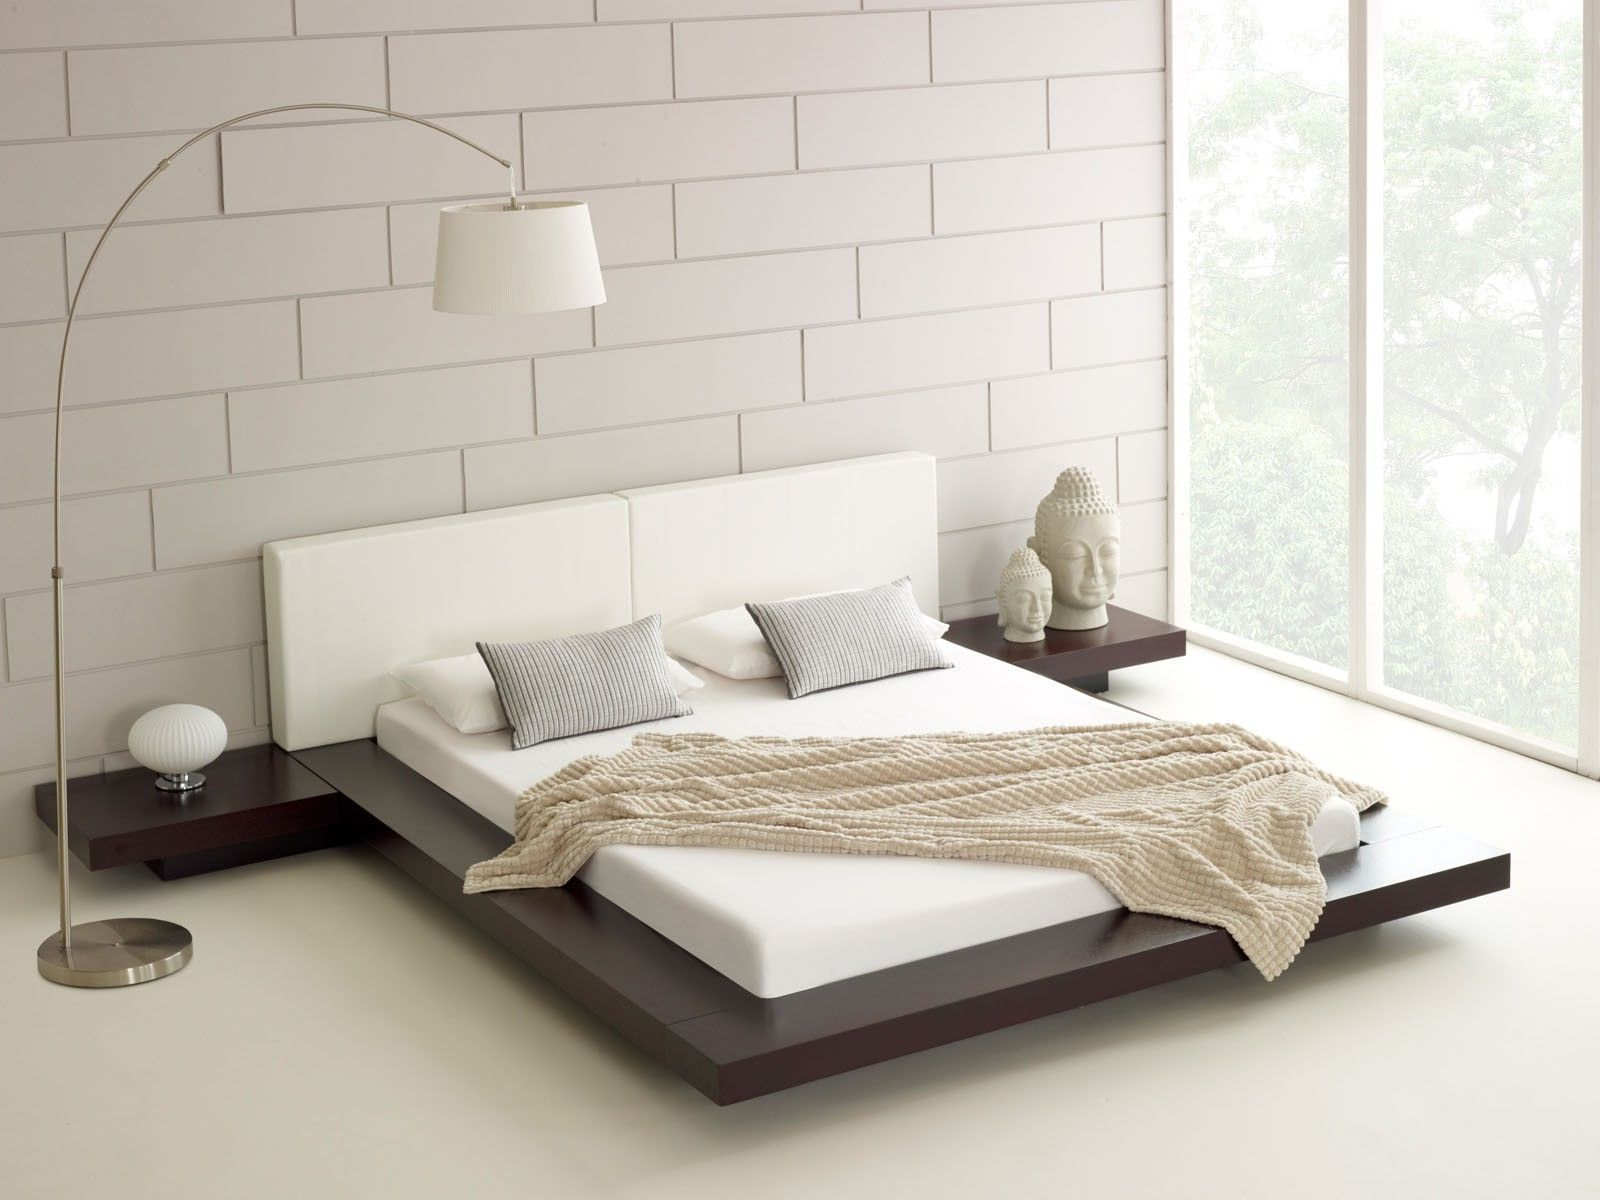 Contemporary White Japanese Bed Design With Unique White Floor .